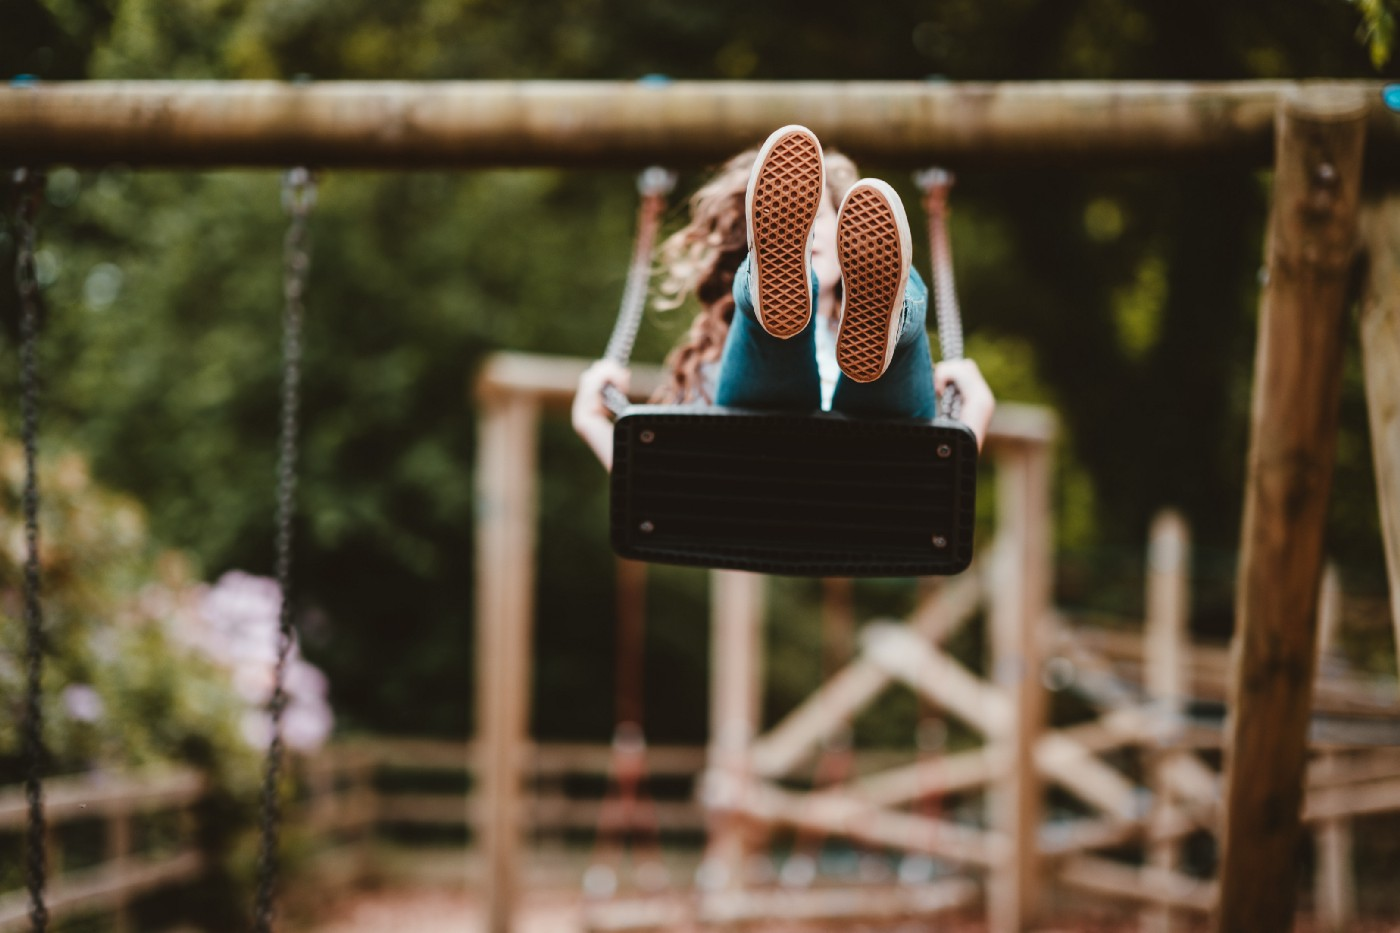 woman riding swing with trees in background. The swing is high so you can mainly see the bottom of the swing and her feet.